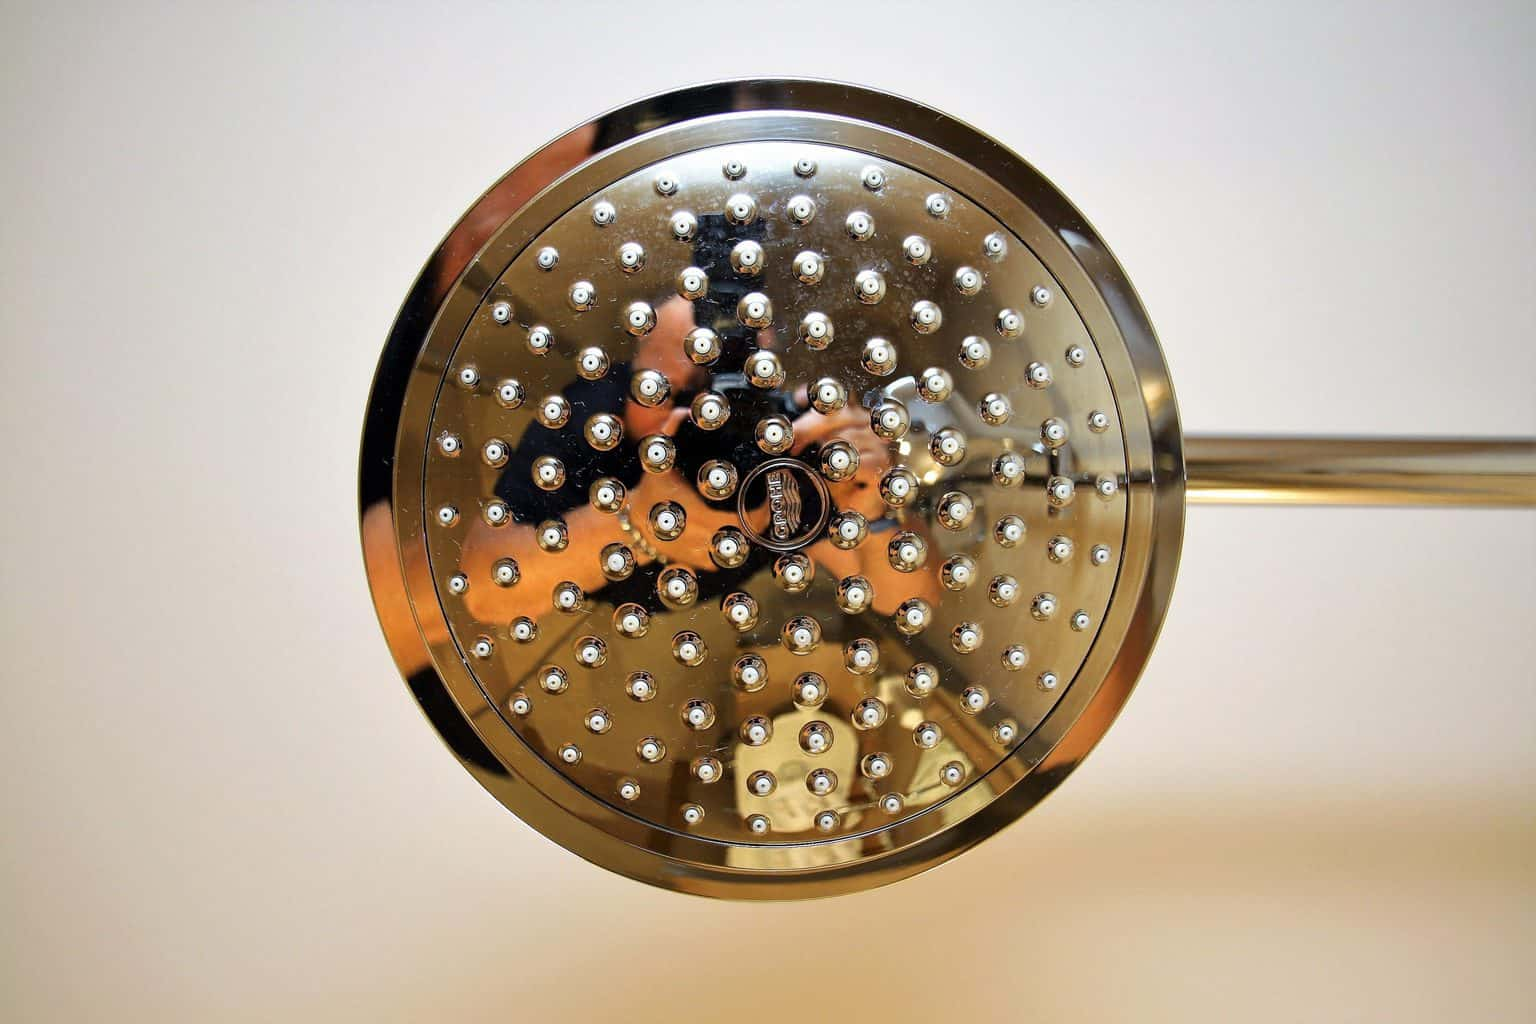 A gold toned shower head